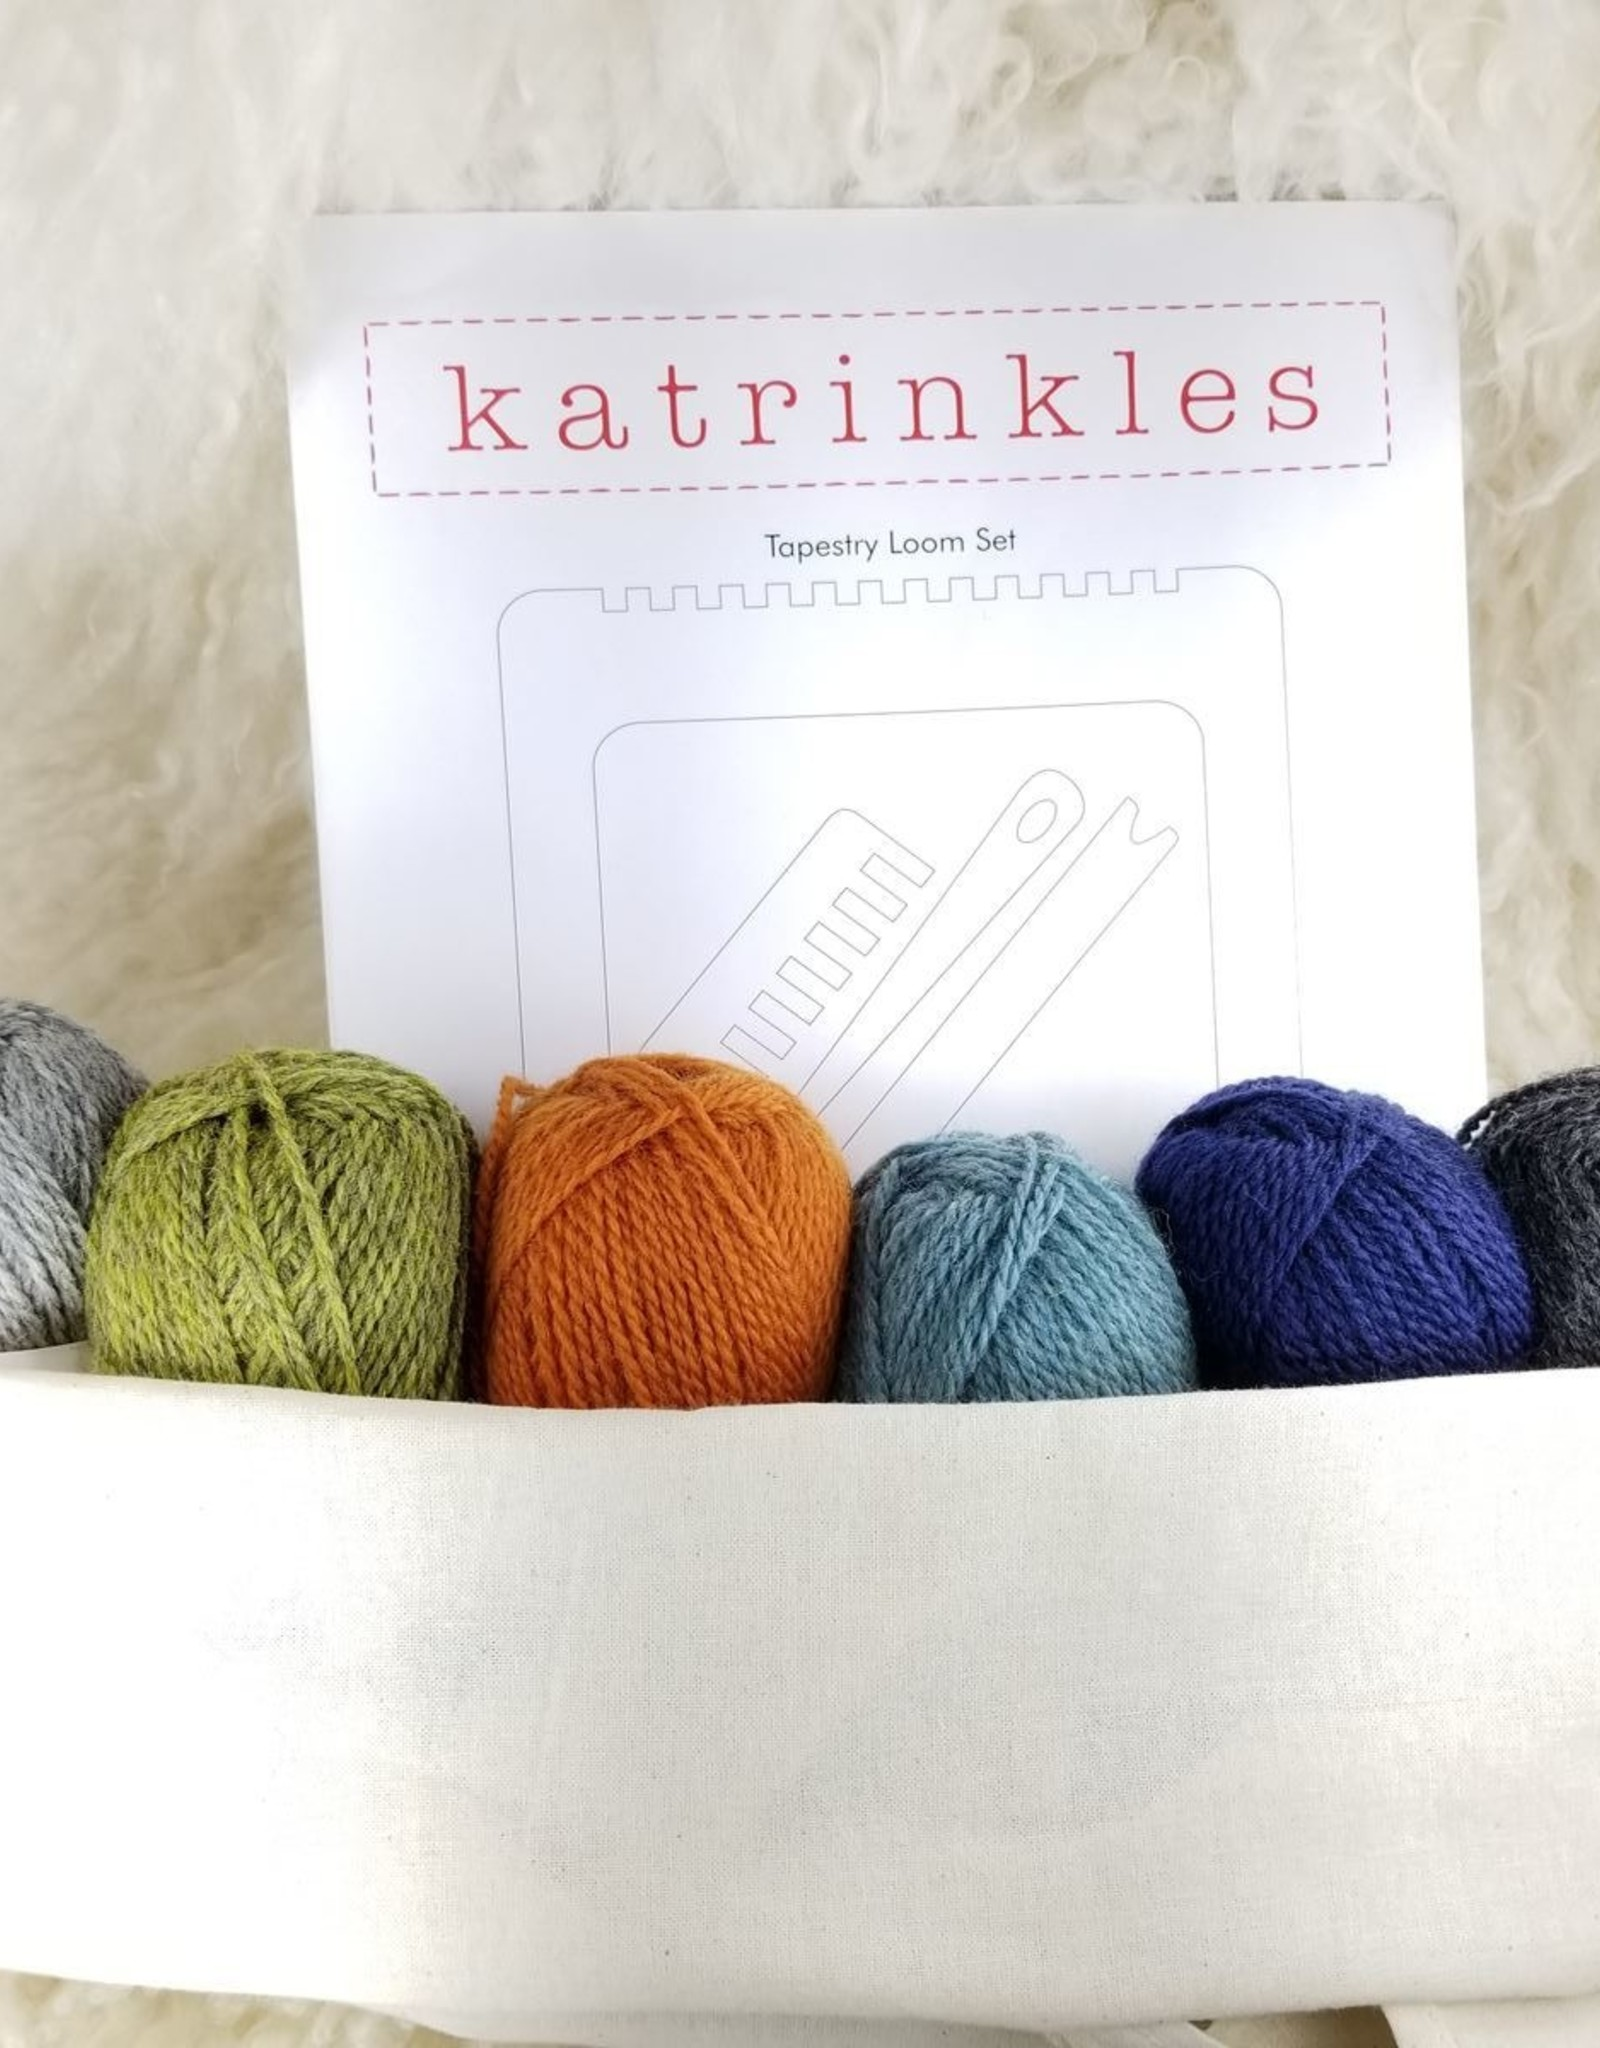 KIT Tapestry Weaving Set with yarn